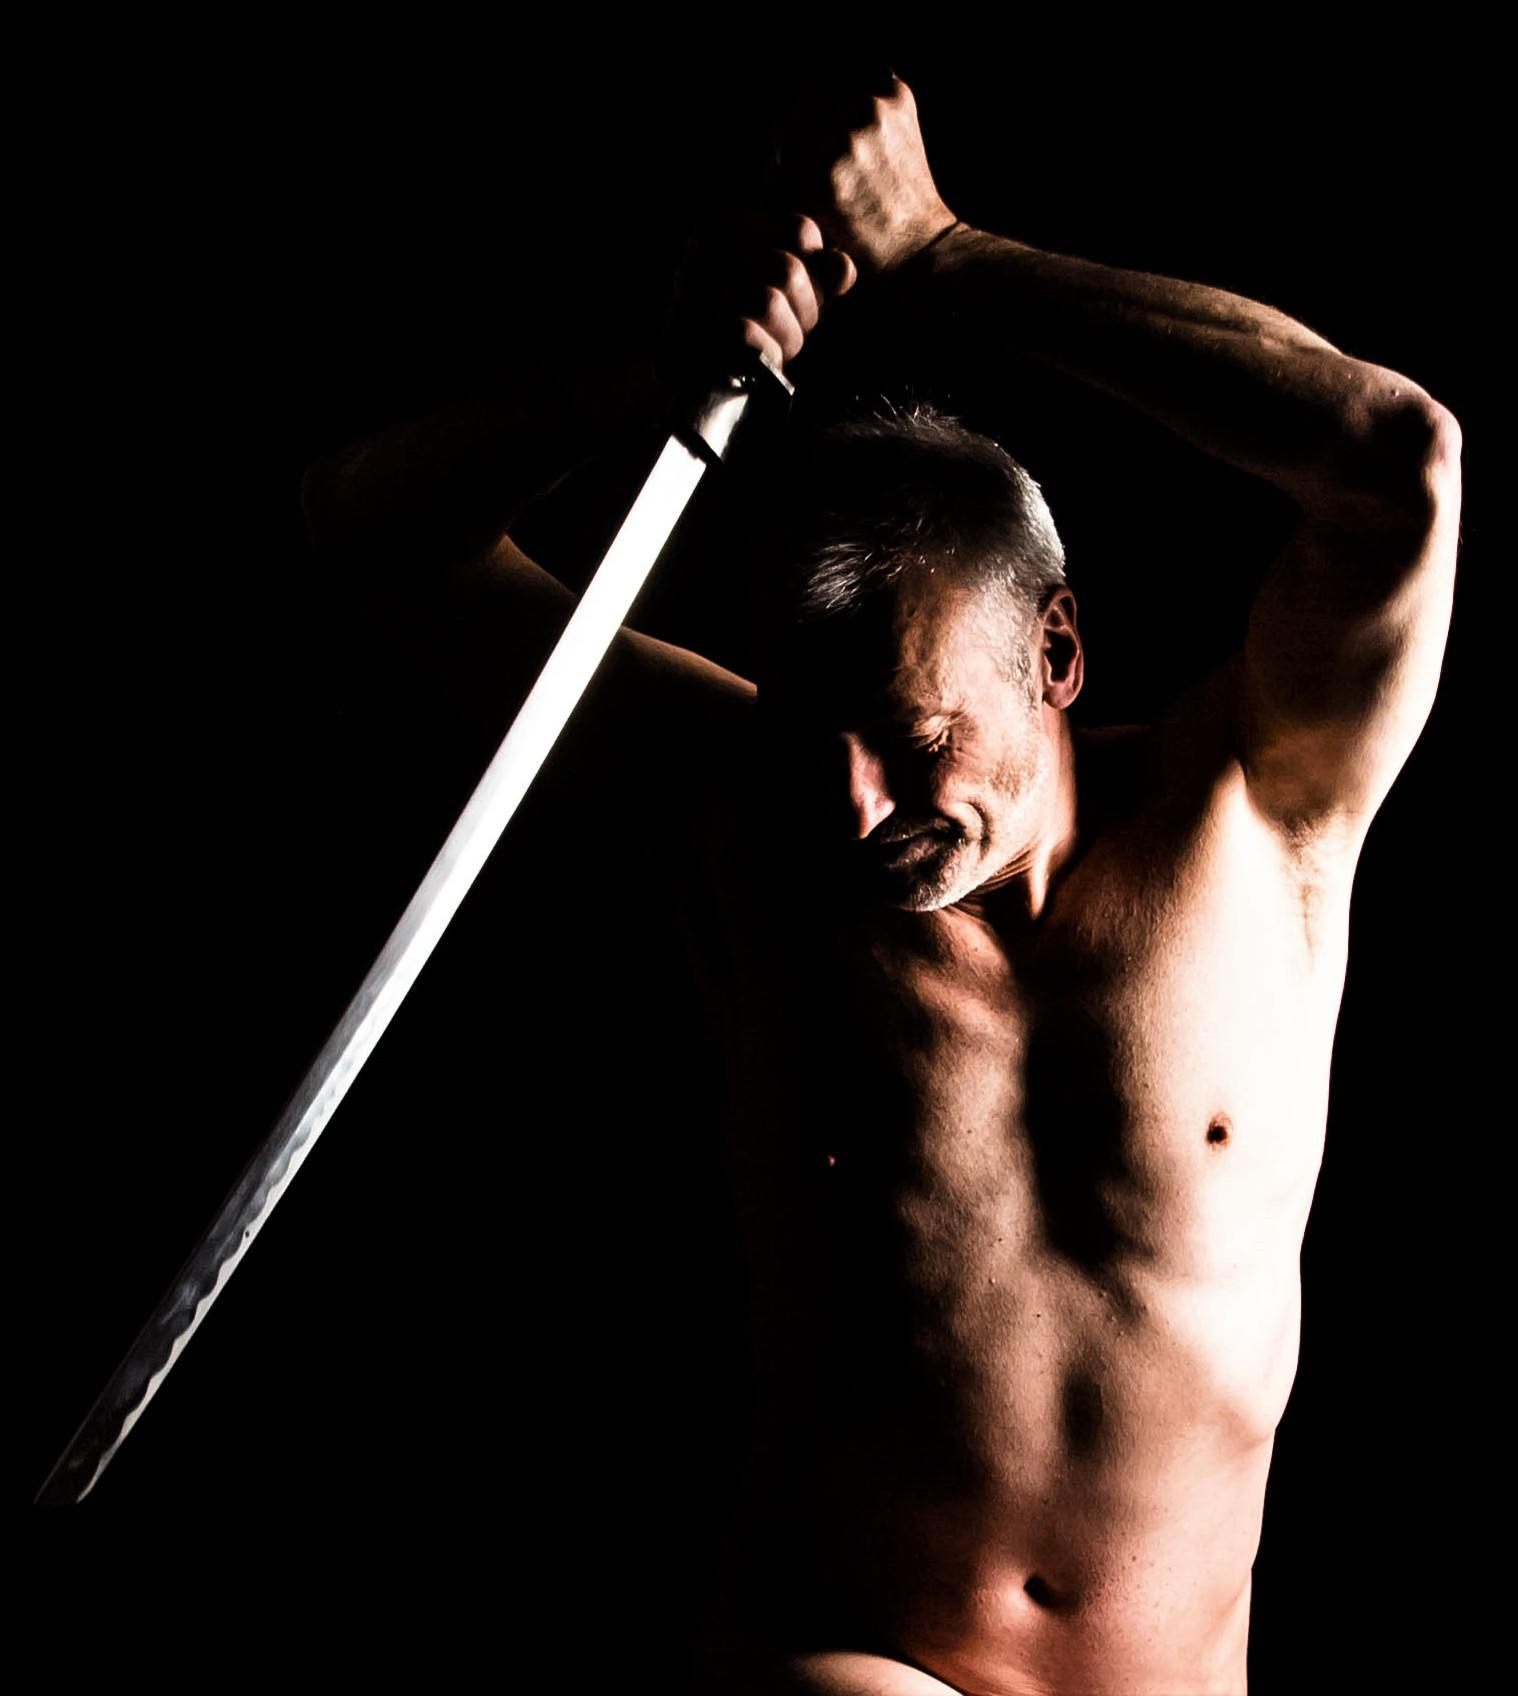 life model Julian, posing with a sword in dramatic light for an artist to draw or sculpt